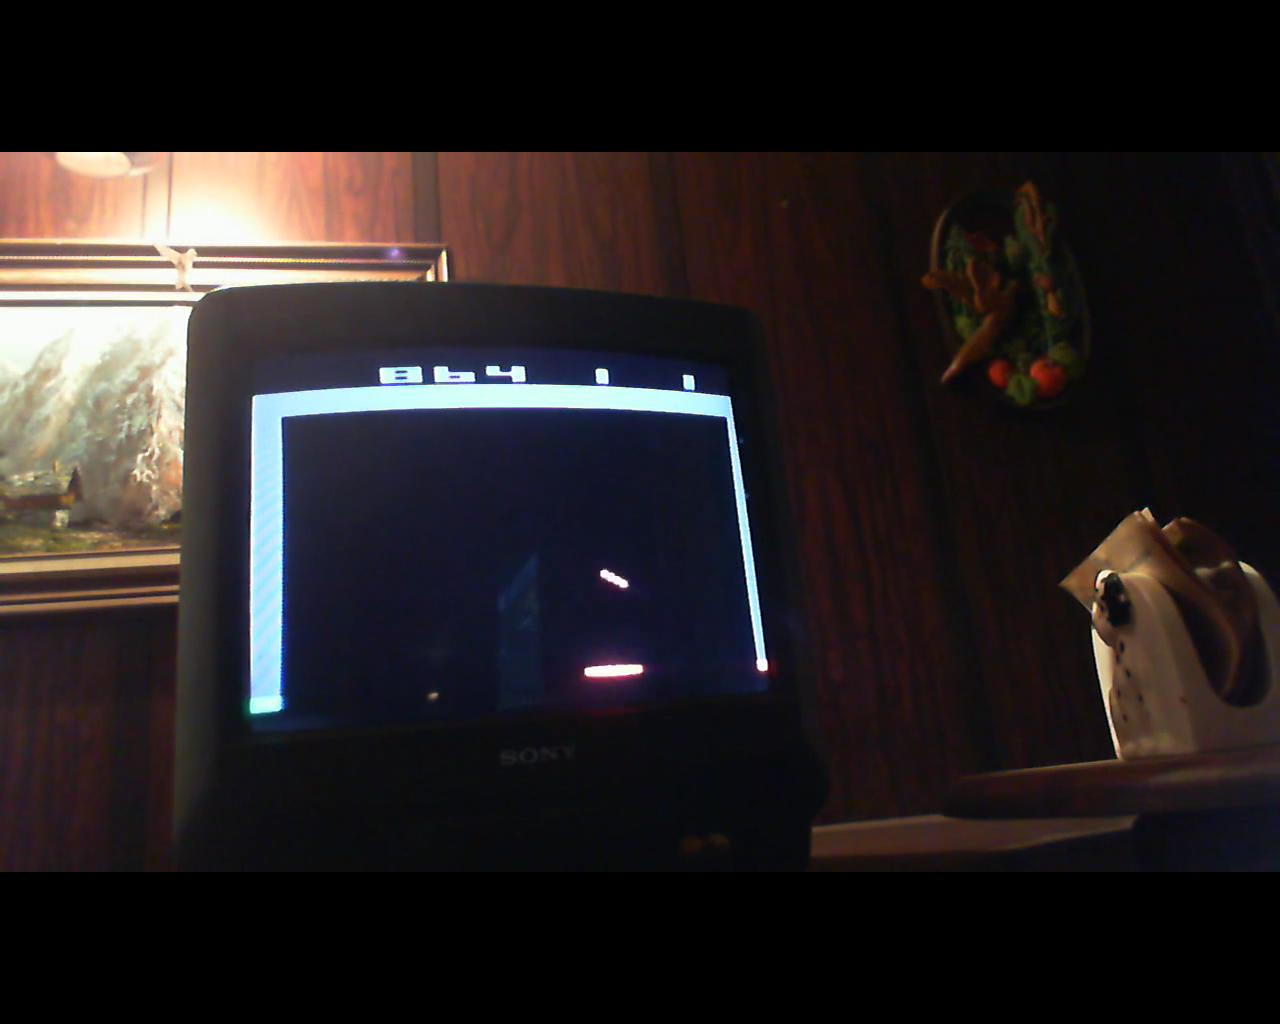 thedarkbanshee: Super Breakout: Game 3 (Jakks Pacific Atari TV Paddle) 864 points on 2014-09-24 13:32:30